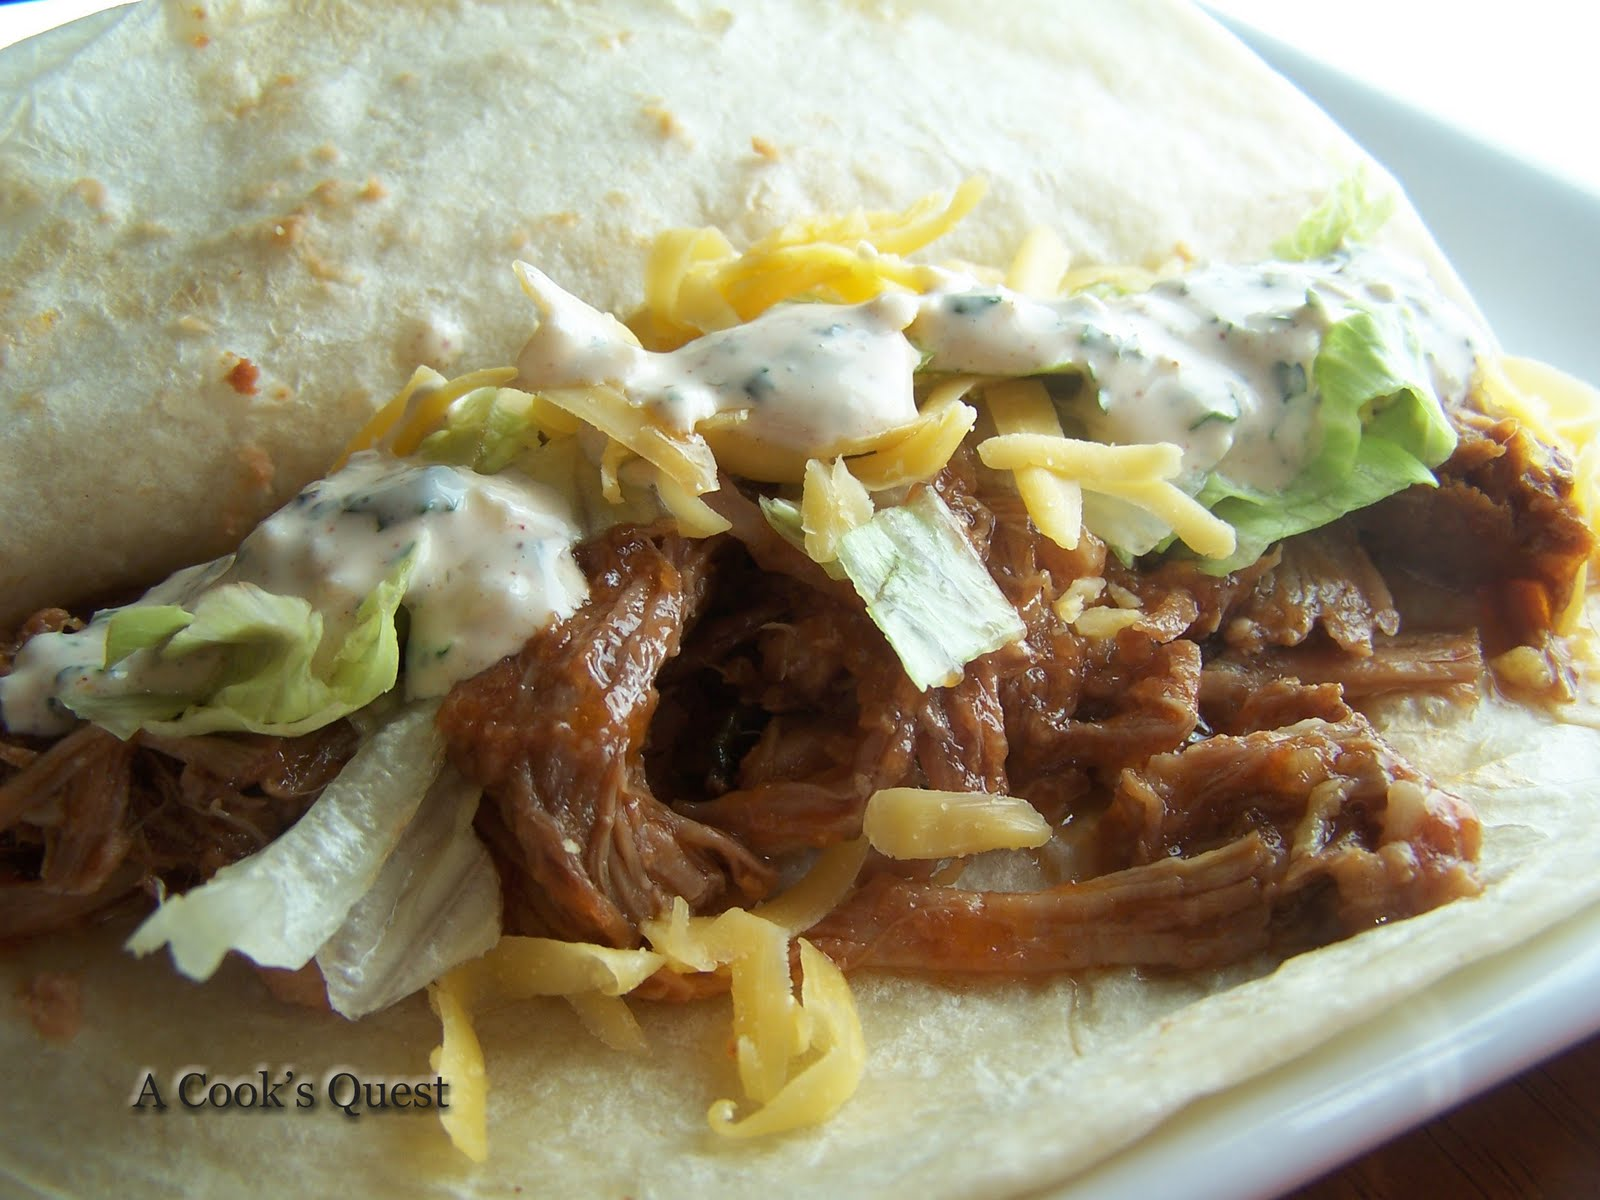 Cook's Quest: Sweet Shredded Pork Tacos with Cilantro Chili Lime ...